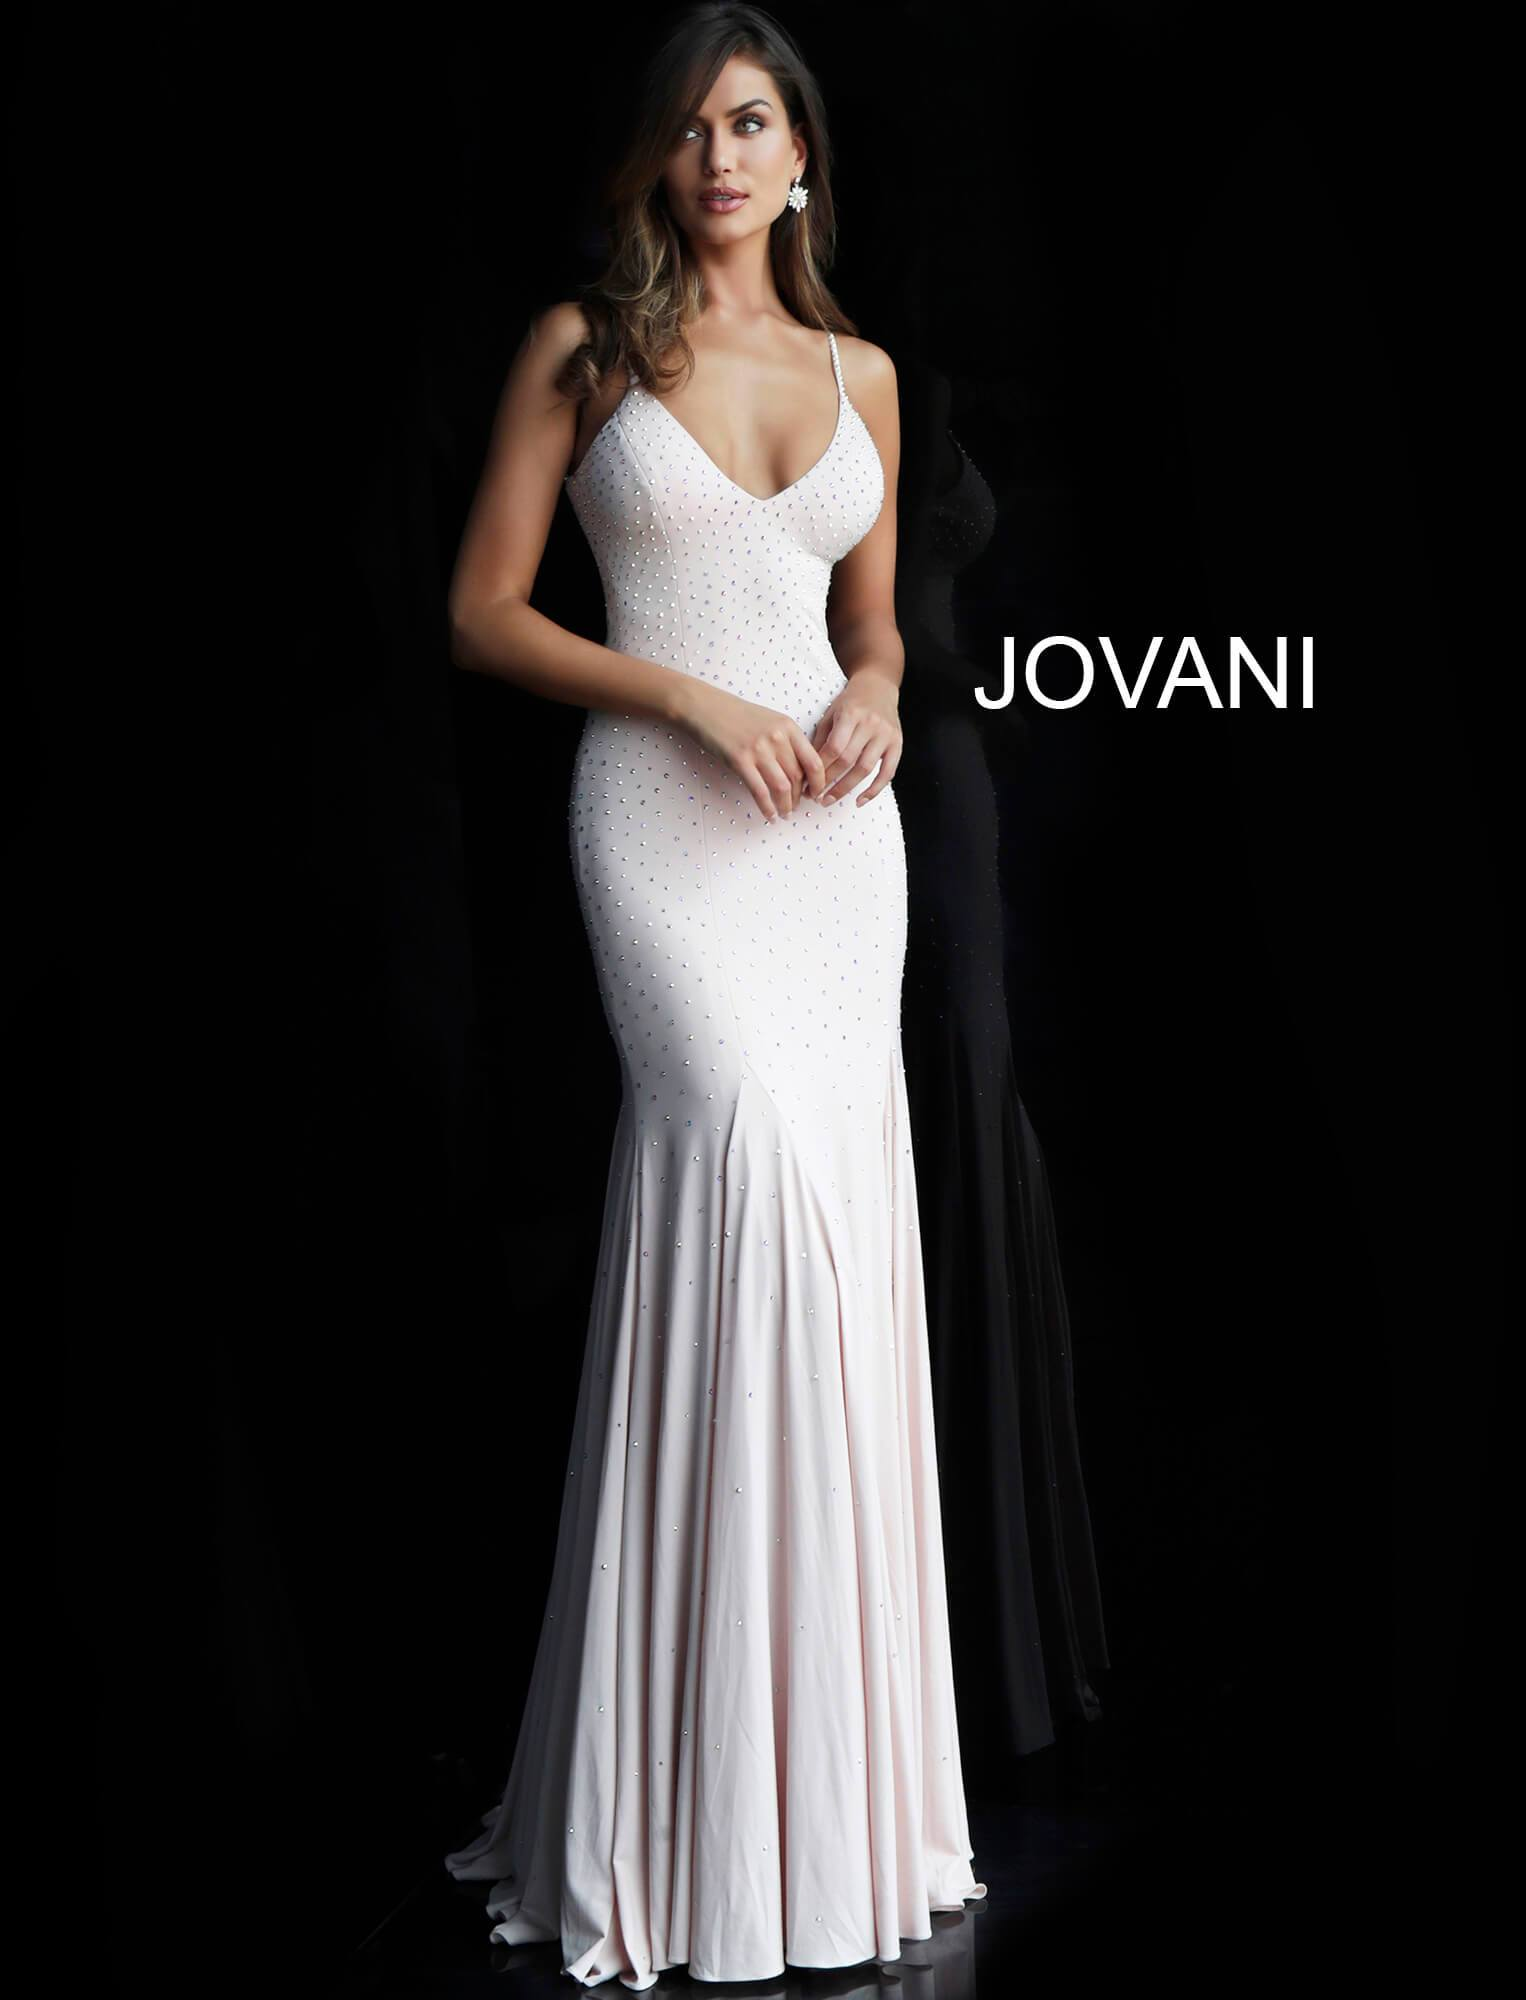 Jovani Backless Embellished Jersey Gown